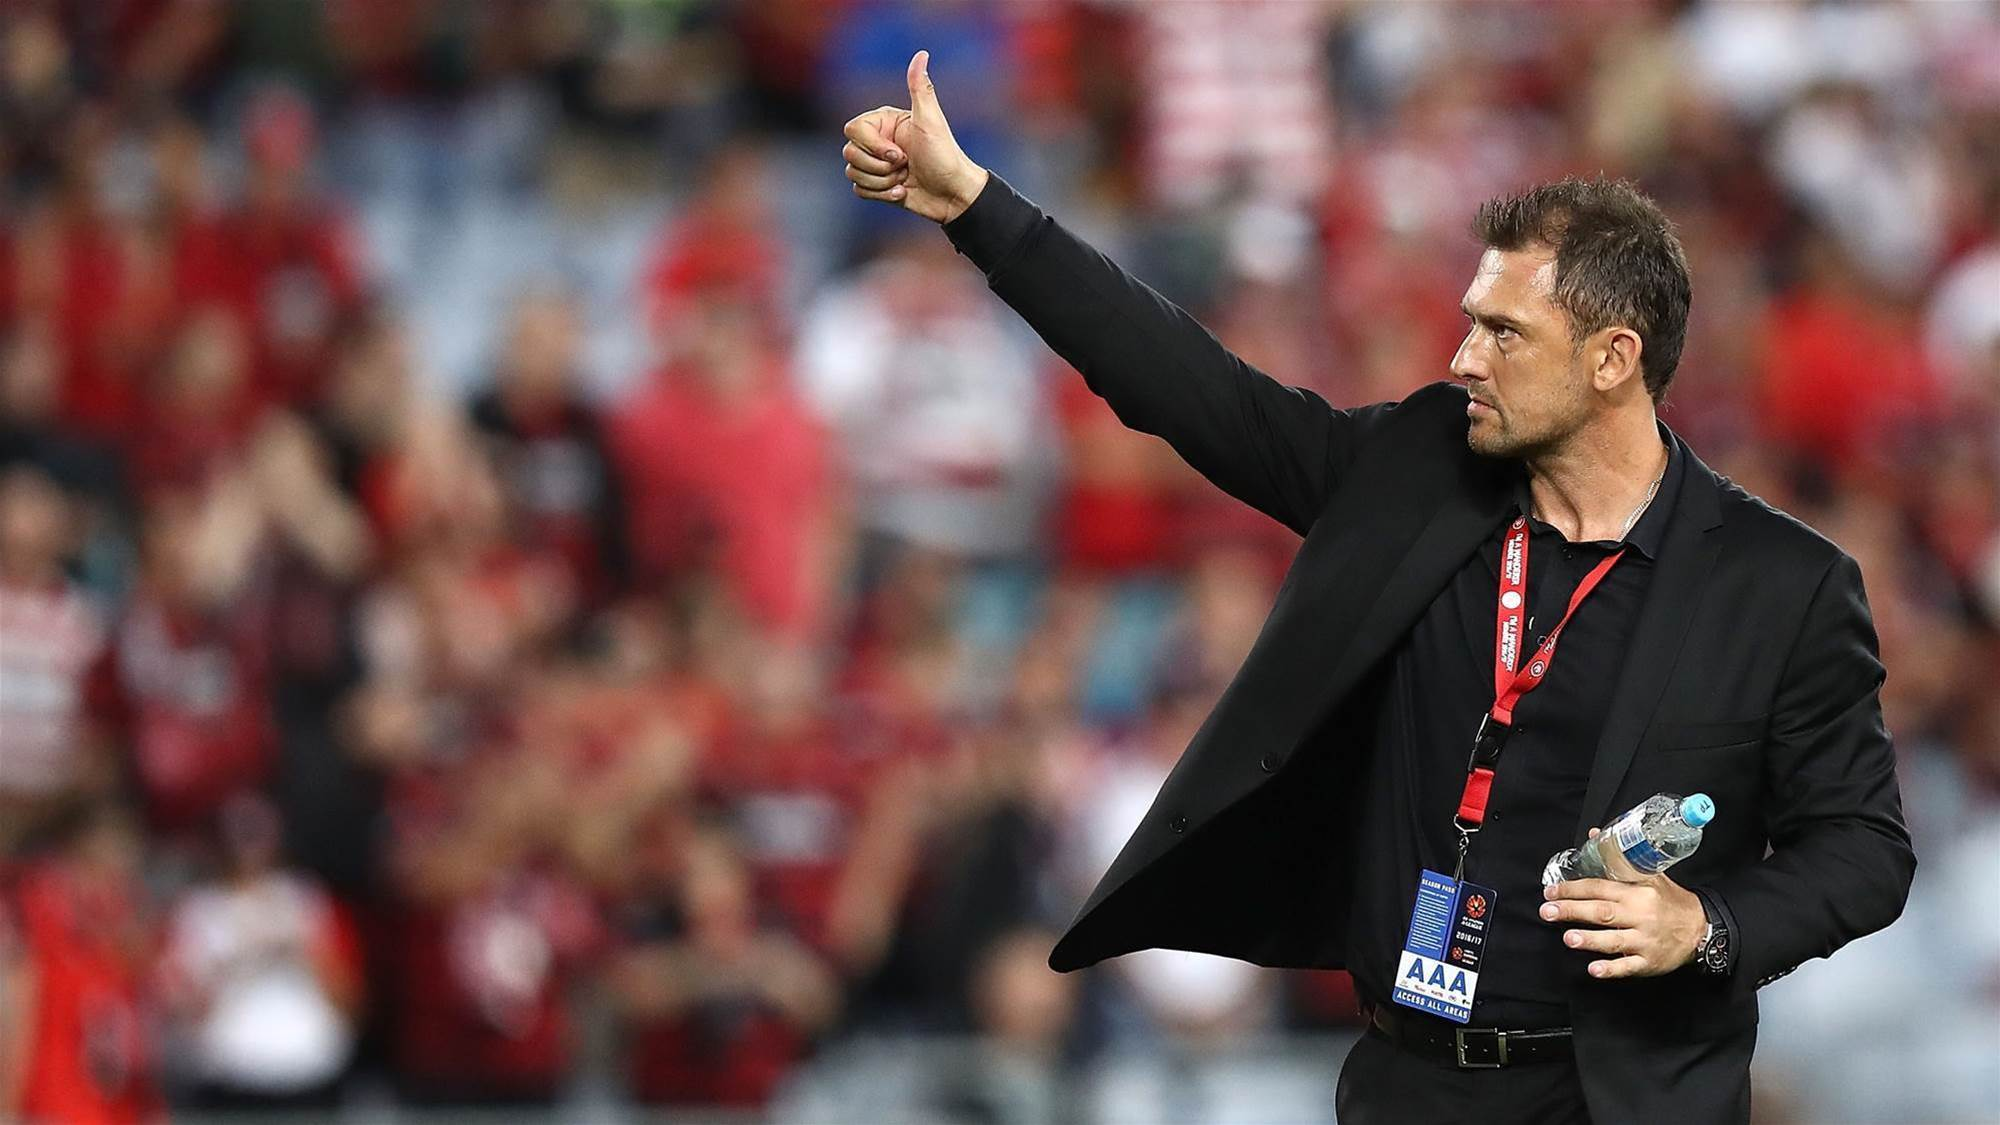 Aspro: Popovic always gave youth a chance